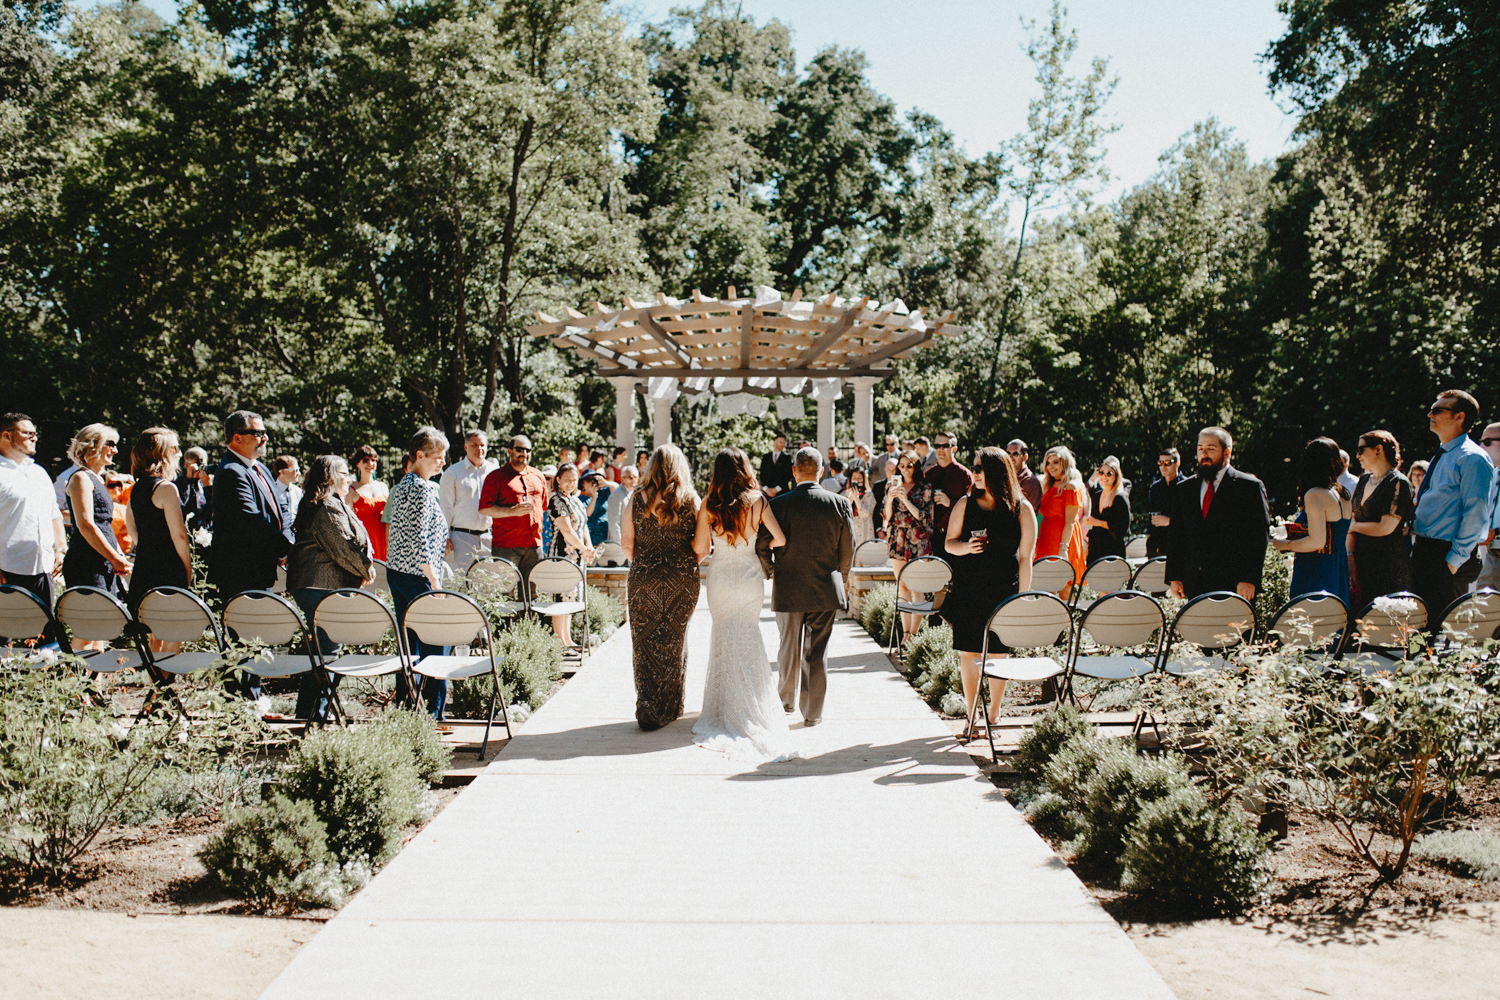 Wedding at the Creekside Rose Gardens in Chico California